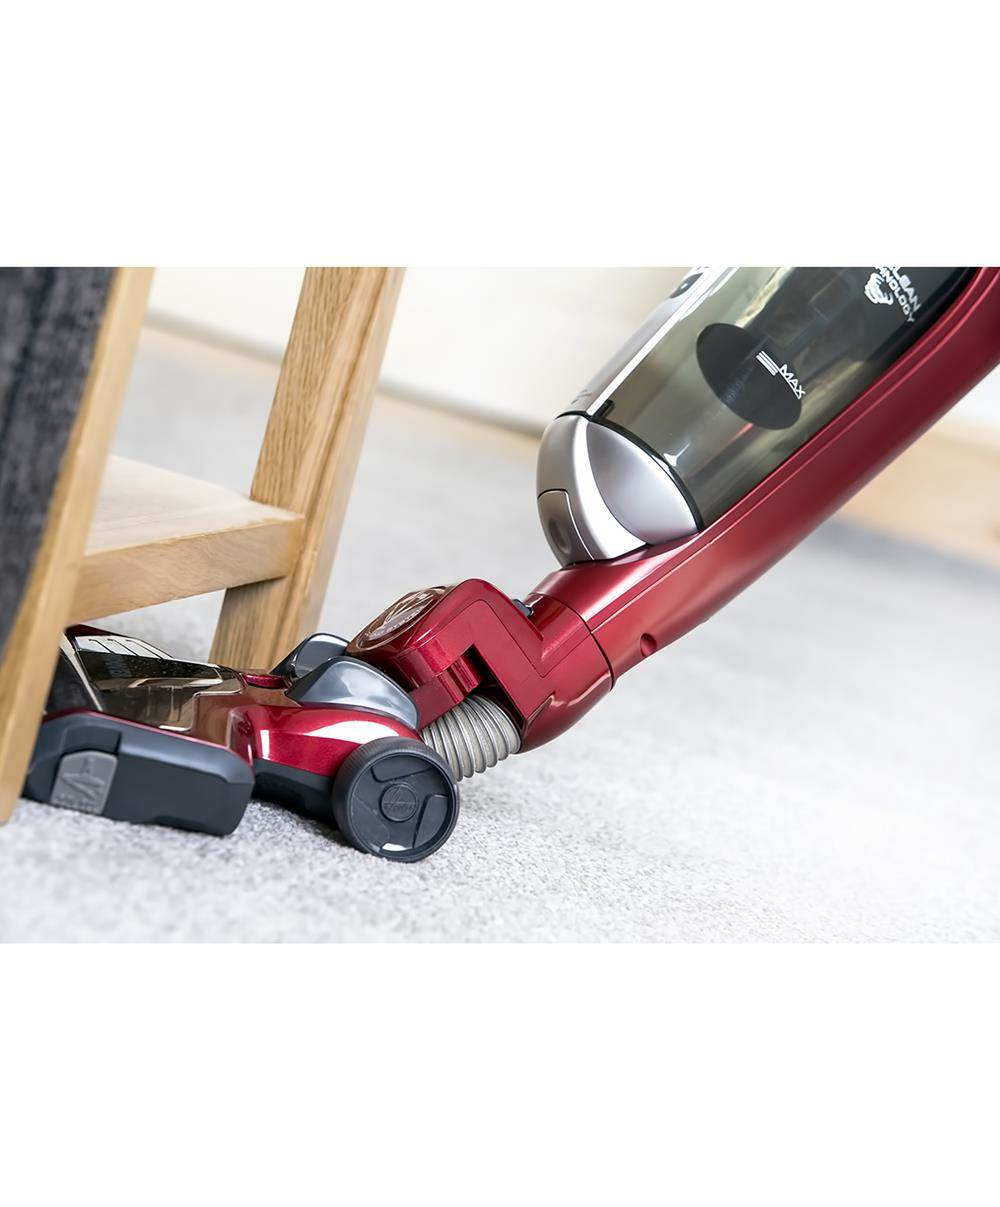 Hoover Unplugged Cordless Stick Vac 30V 30min run Time